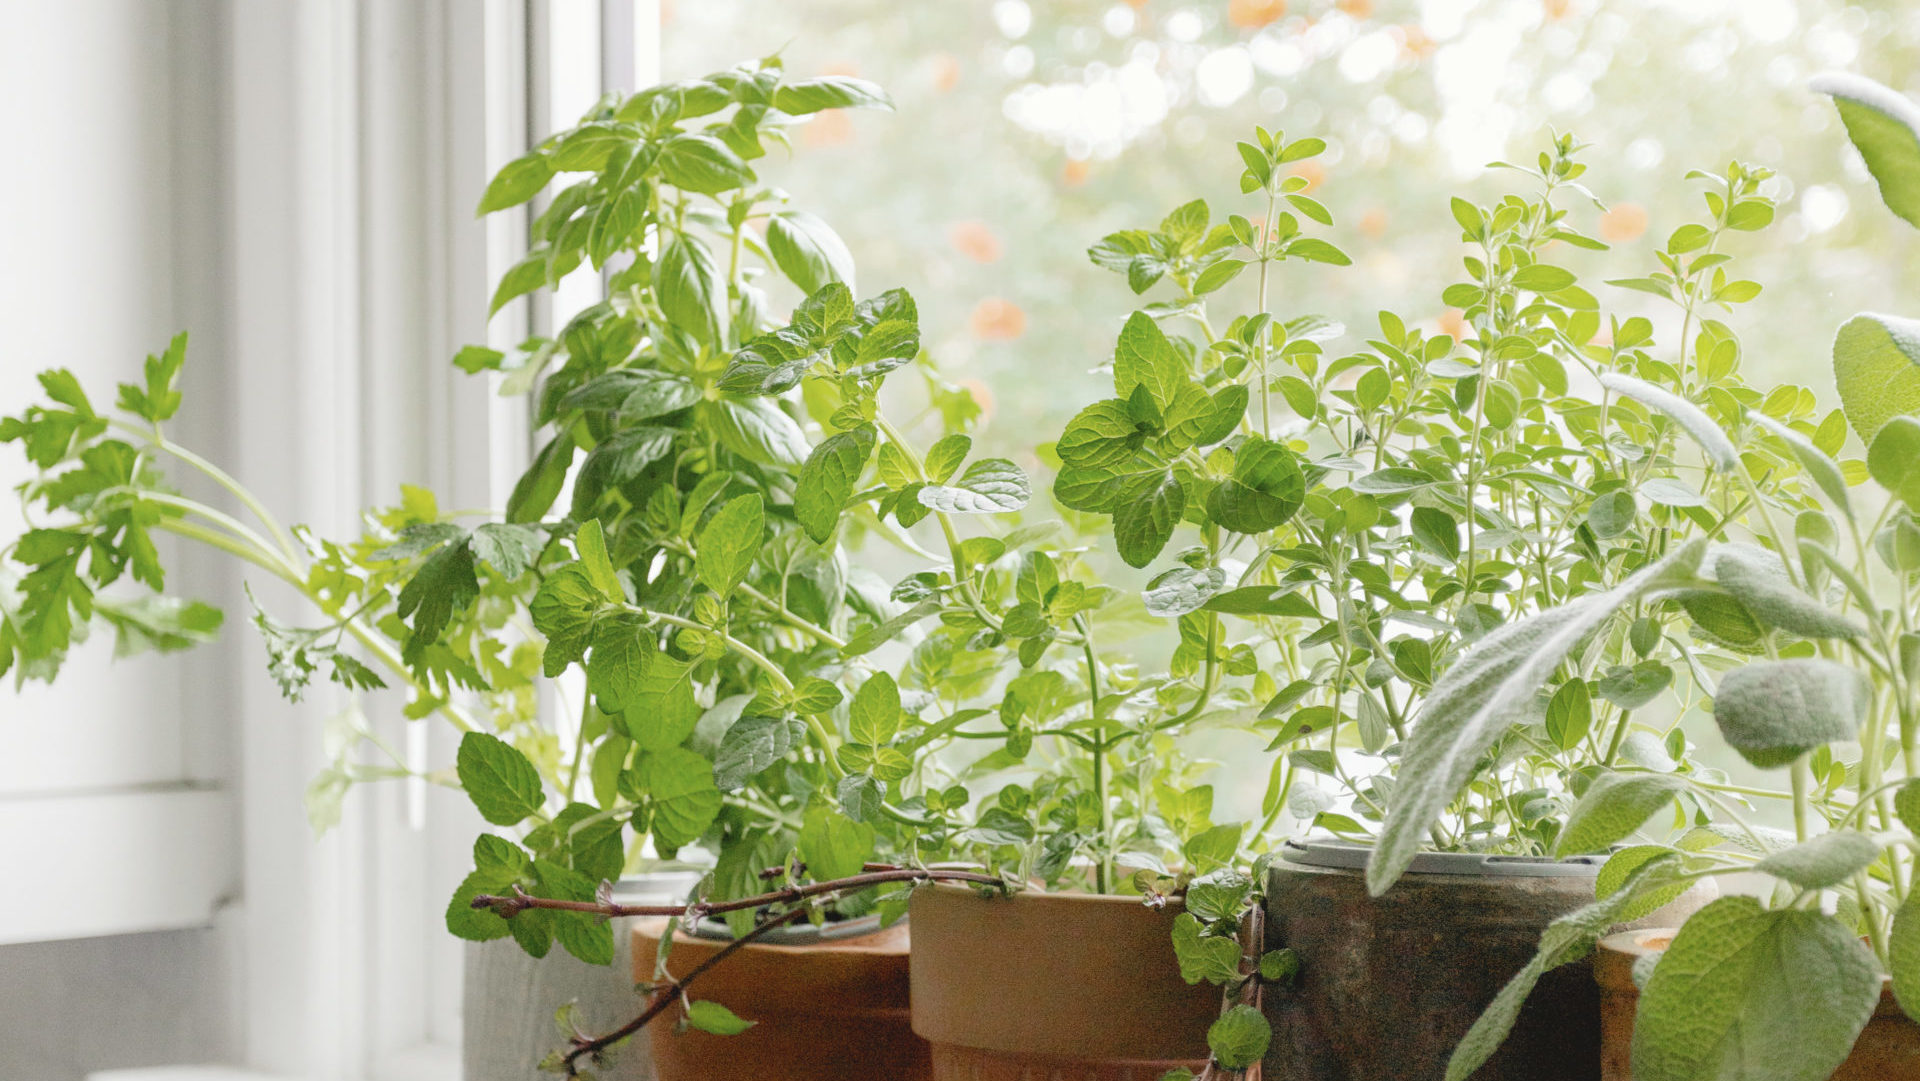 herbs in containers on kitchen windowsill